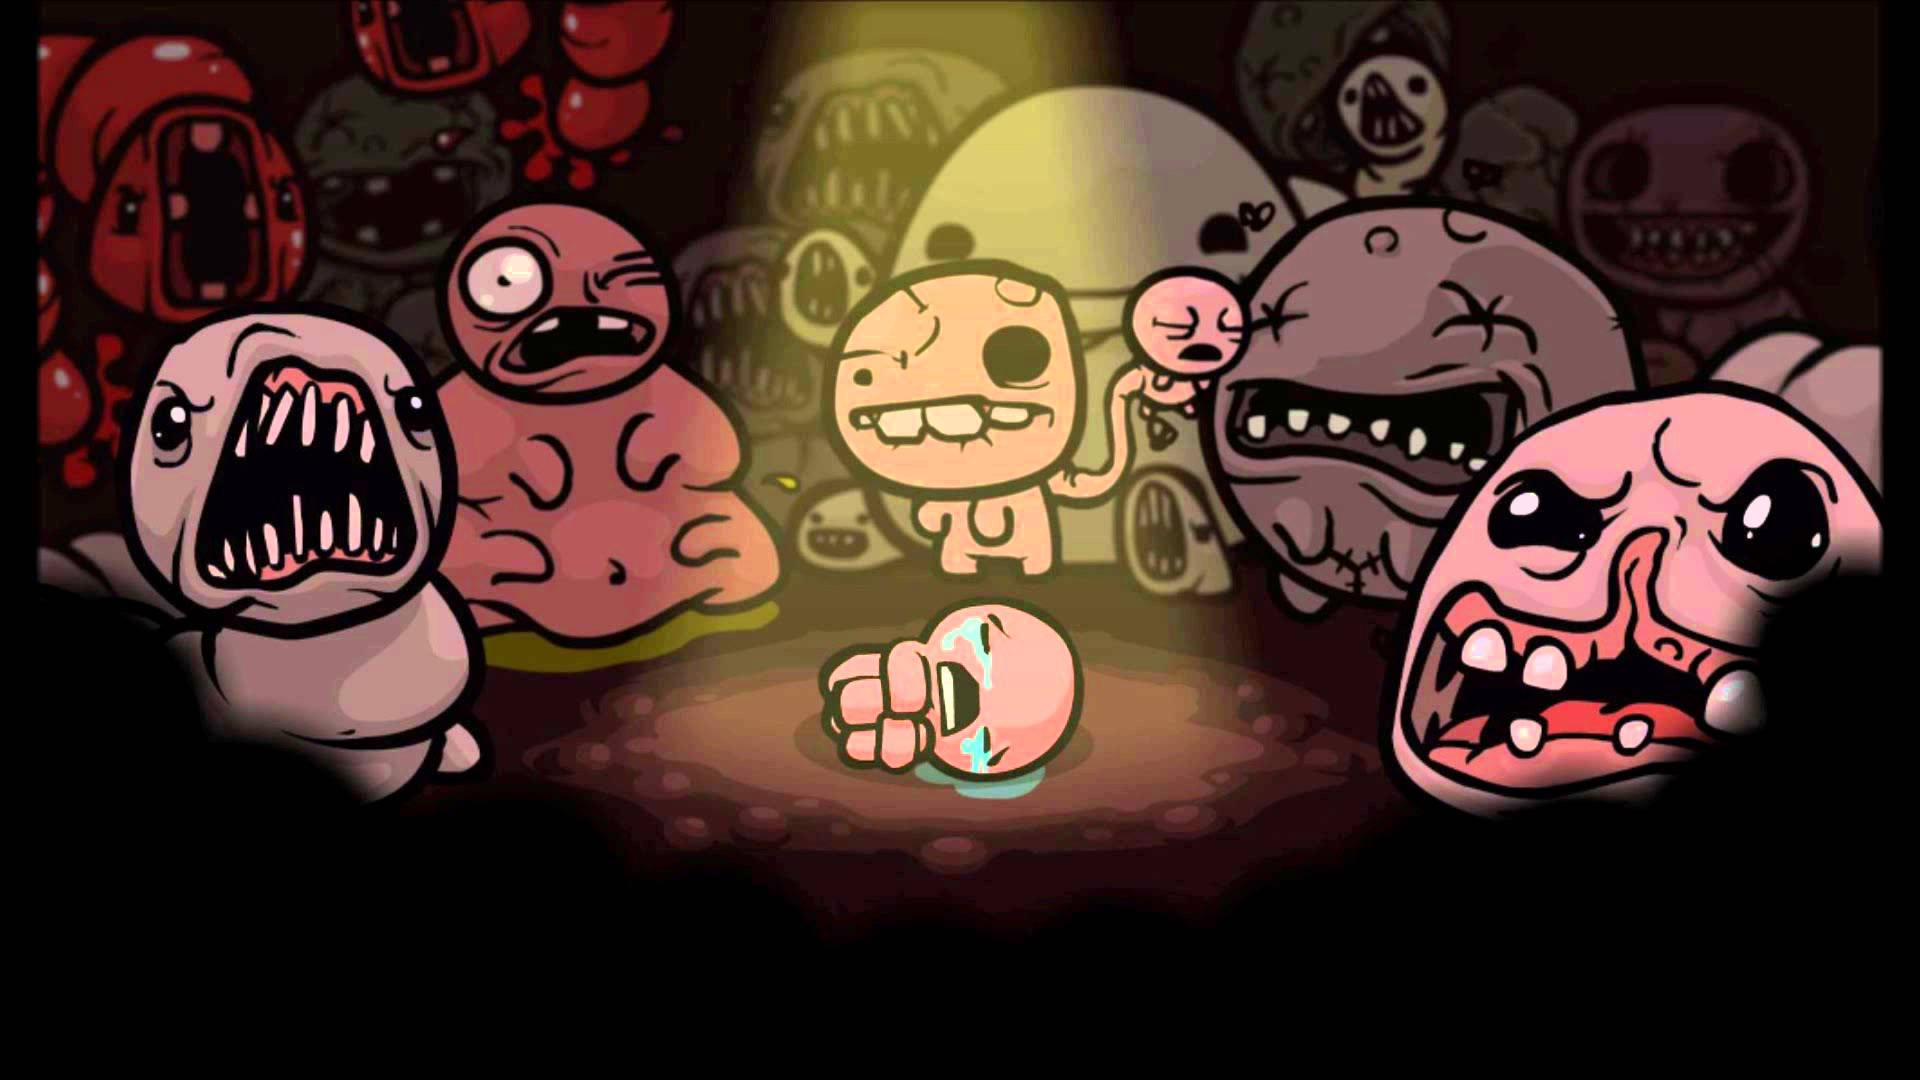 The Binding Of Isaac Afterbirth+ будет включать в себя лучшие пользовательские  модификации  - Изображение 1